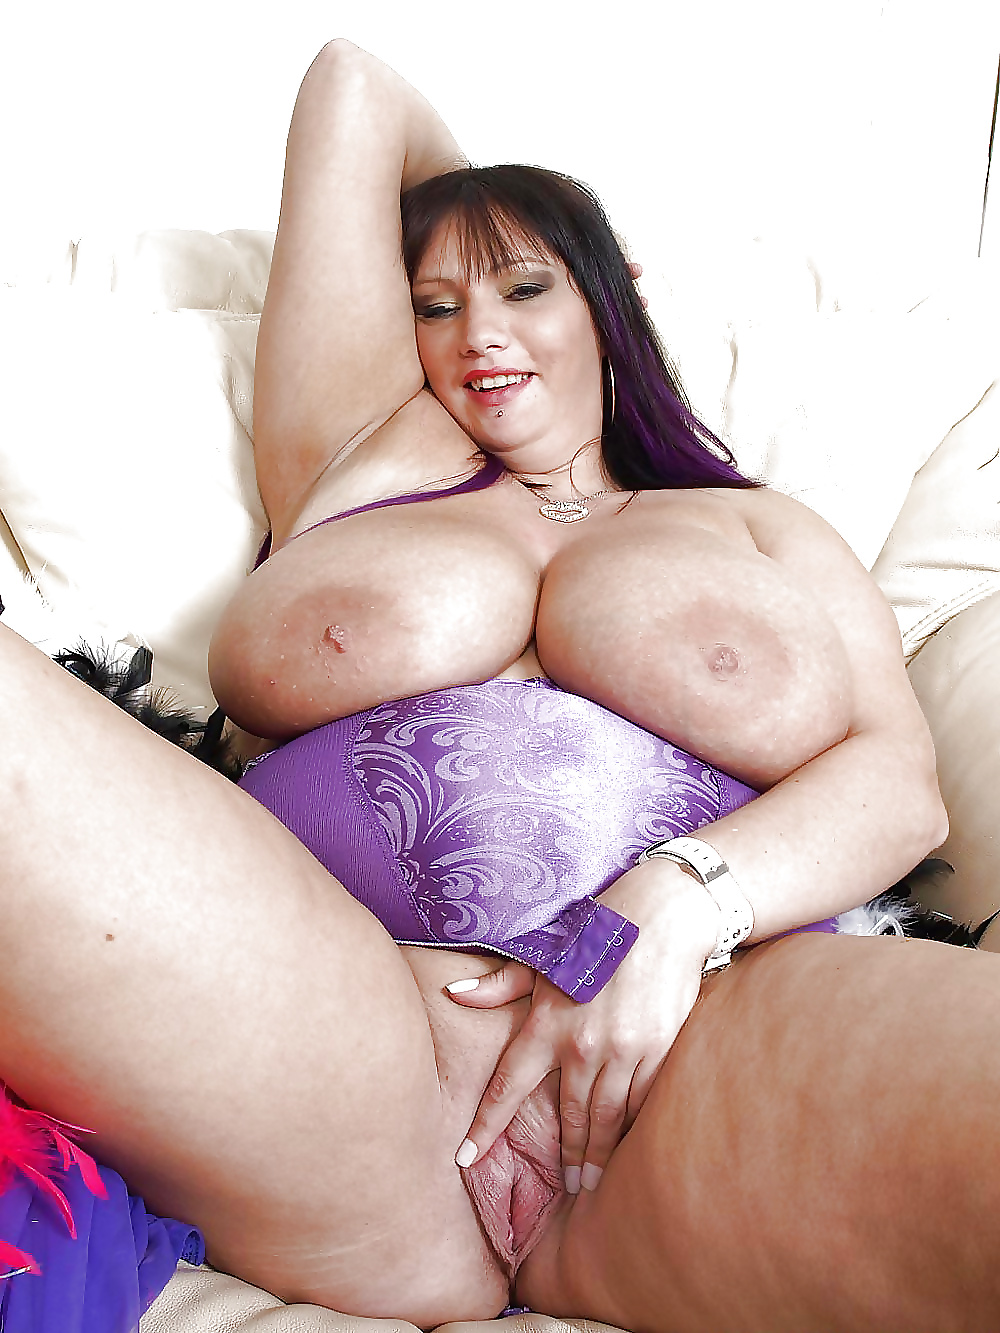 Bbw cougar naked pics — photo 11